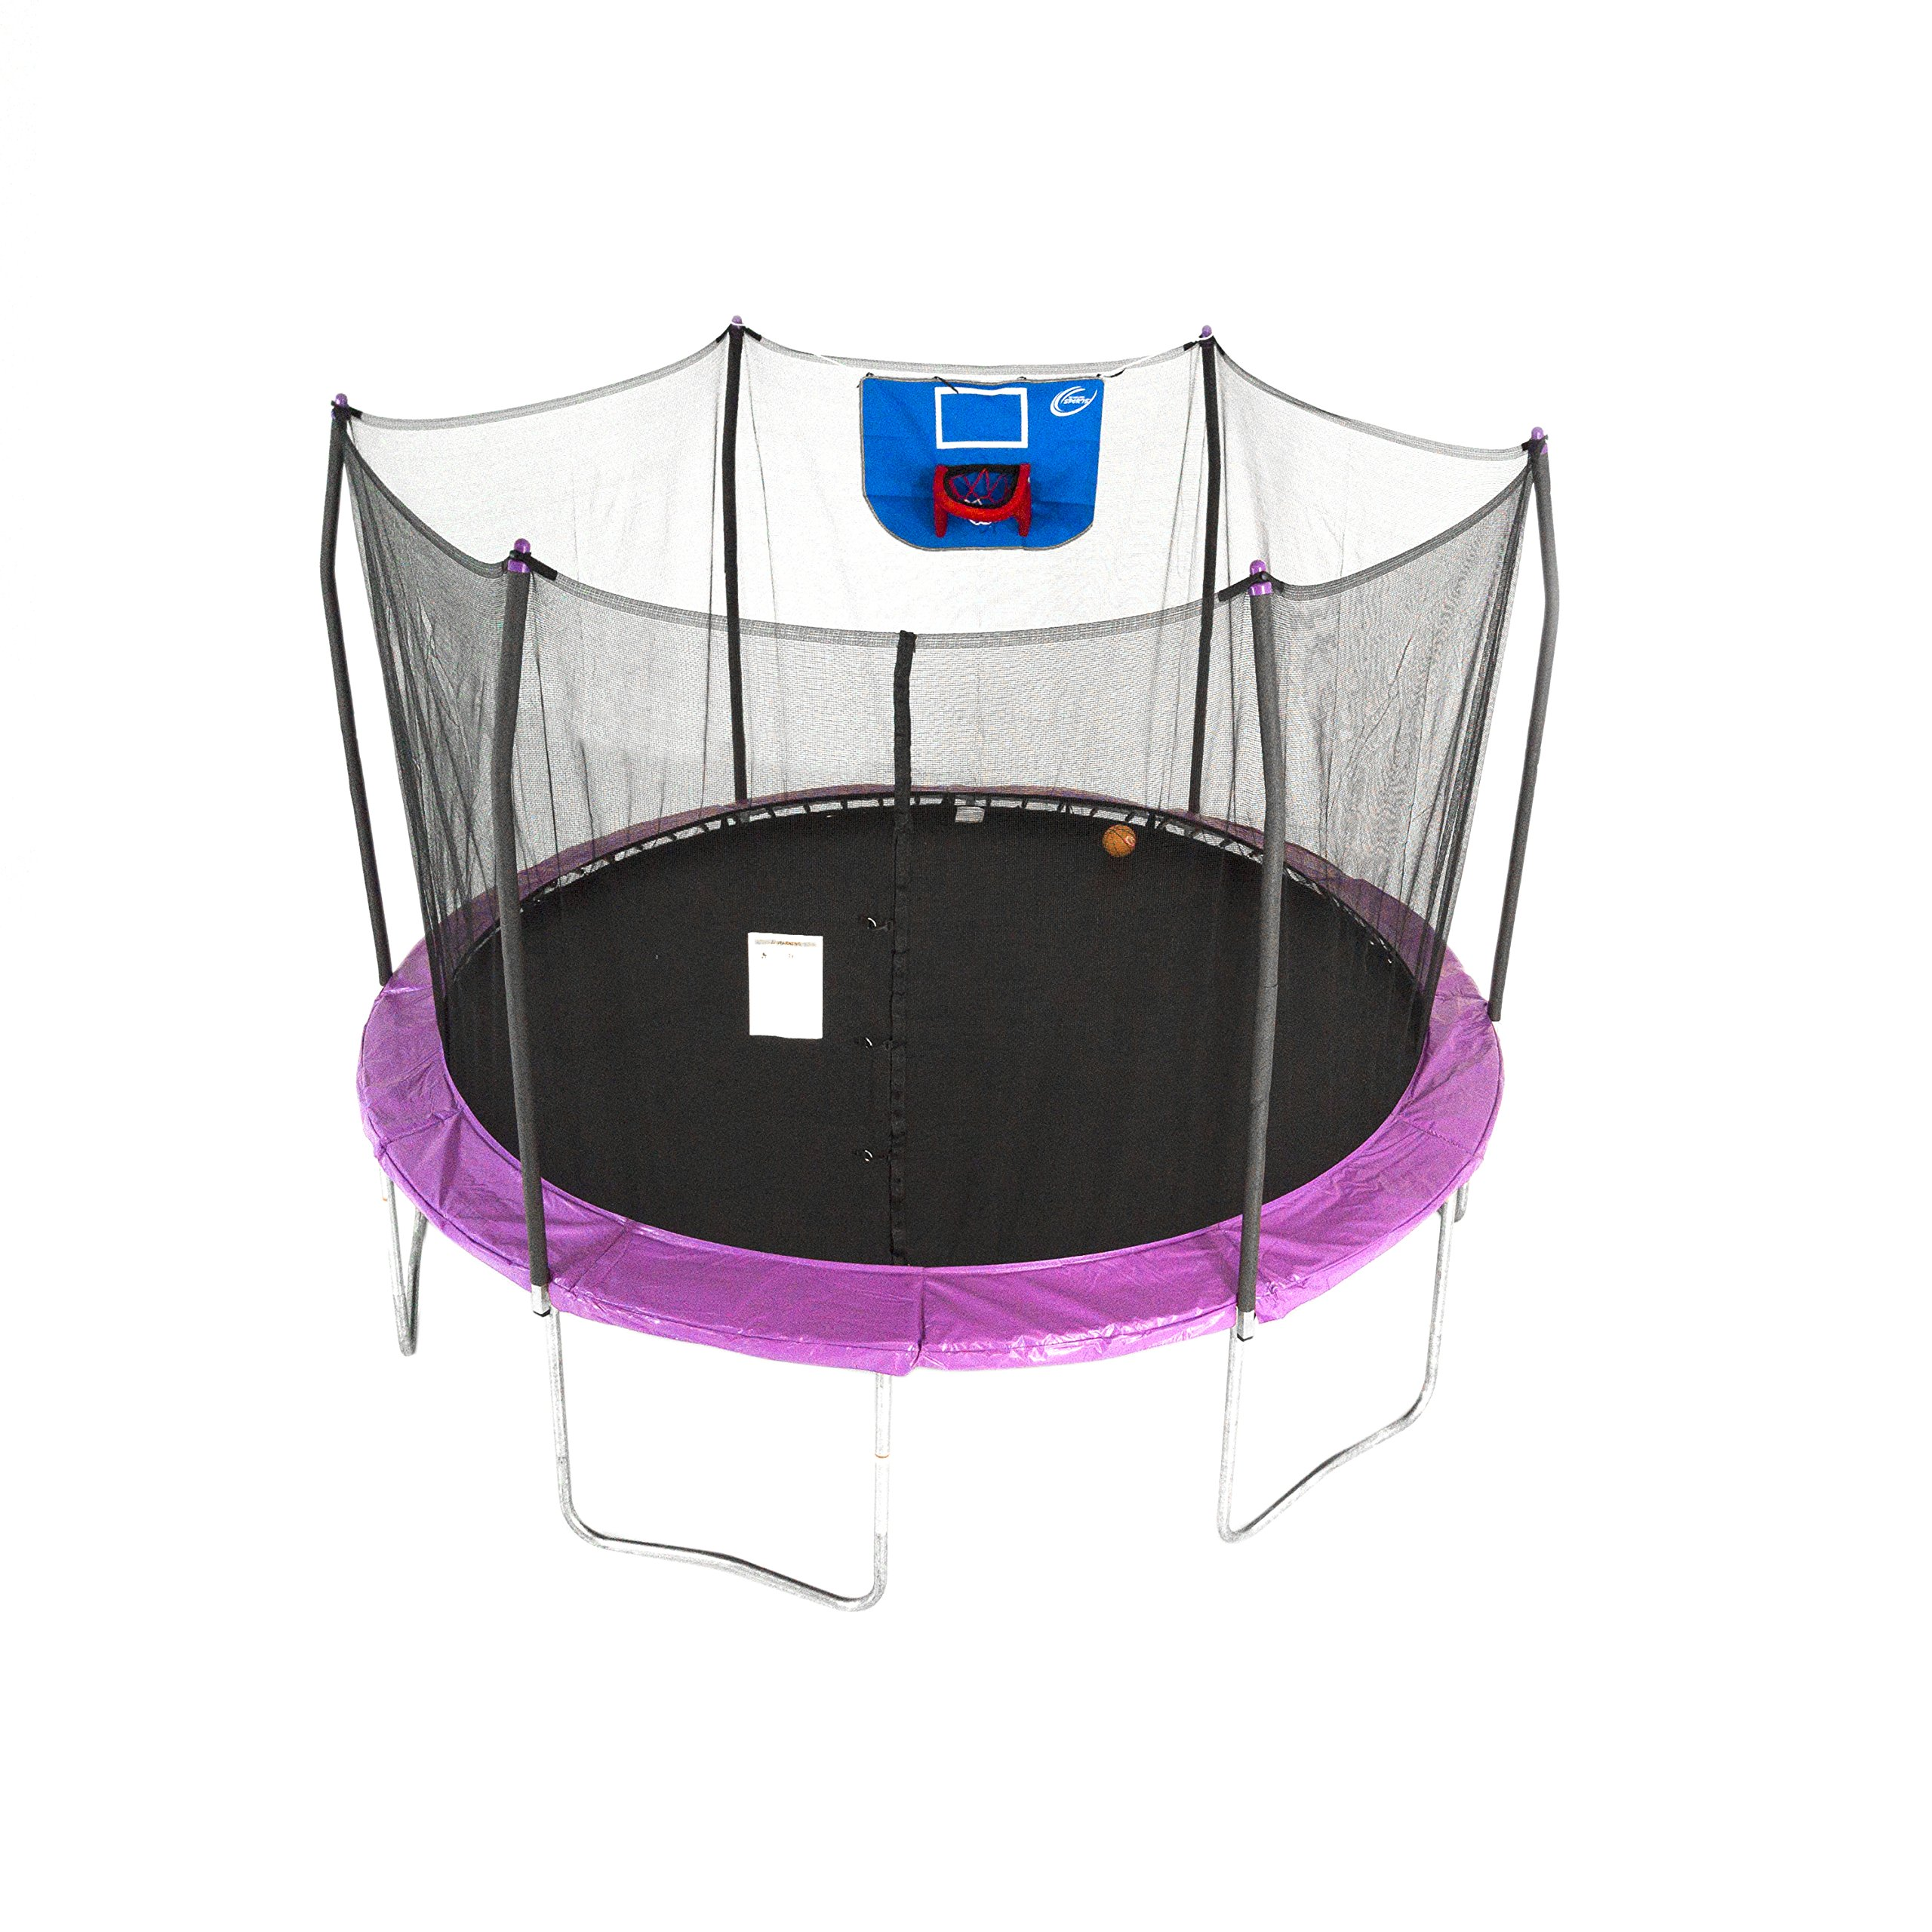 Skywalker Trampolines 12-Foot Jump N' Dunk Trampoline with Enclosure Net - Basketball Trampoline by Skywalker Trampolines